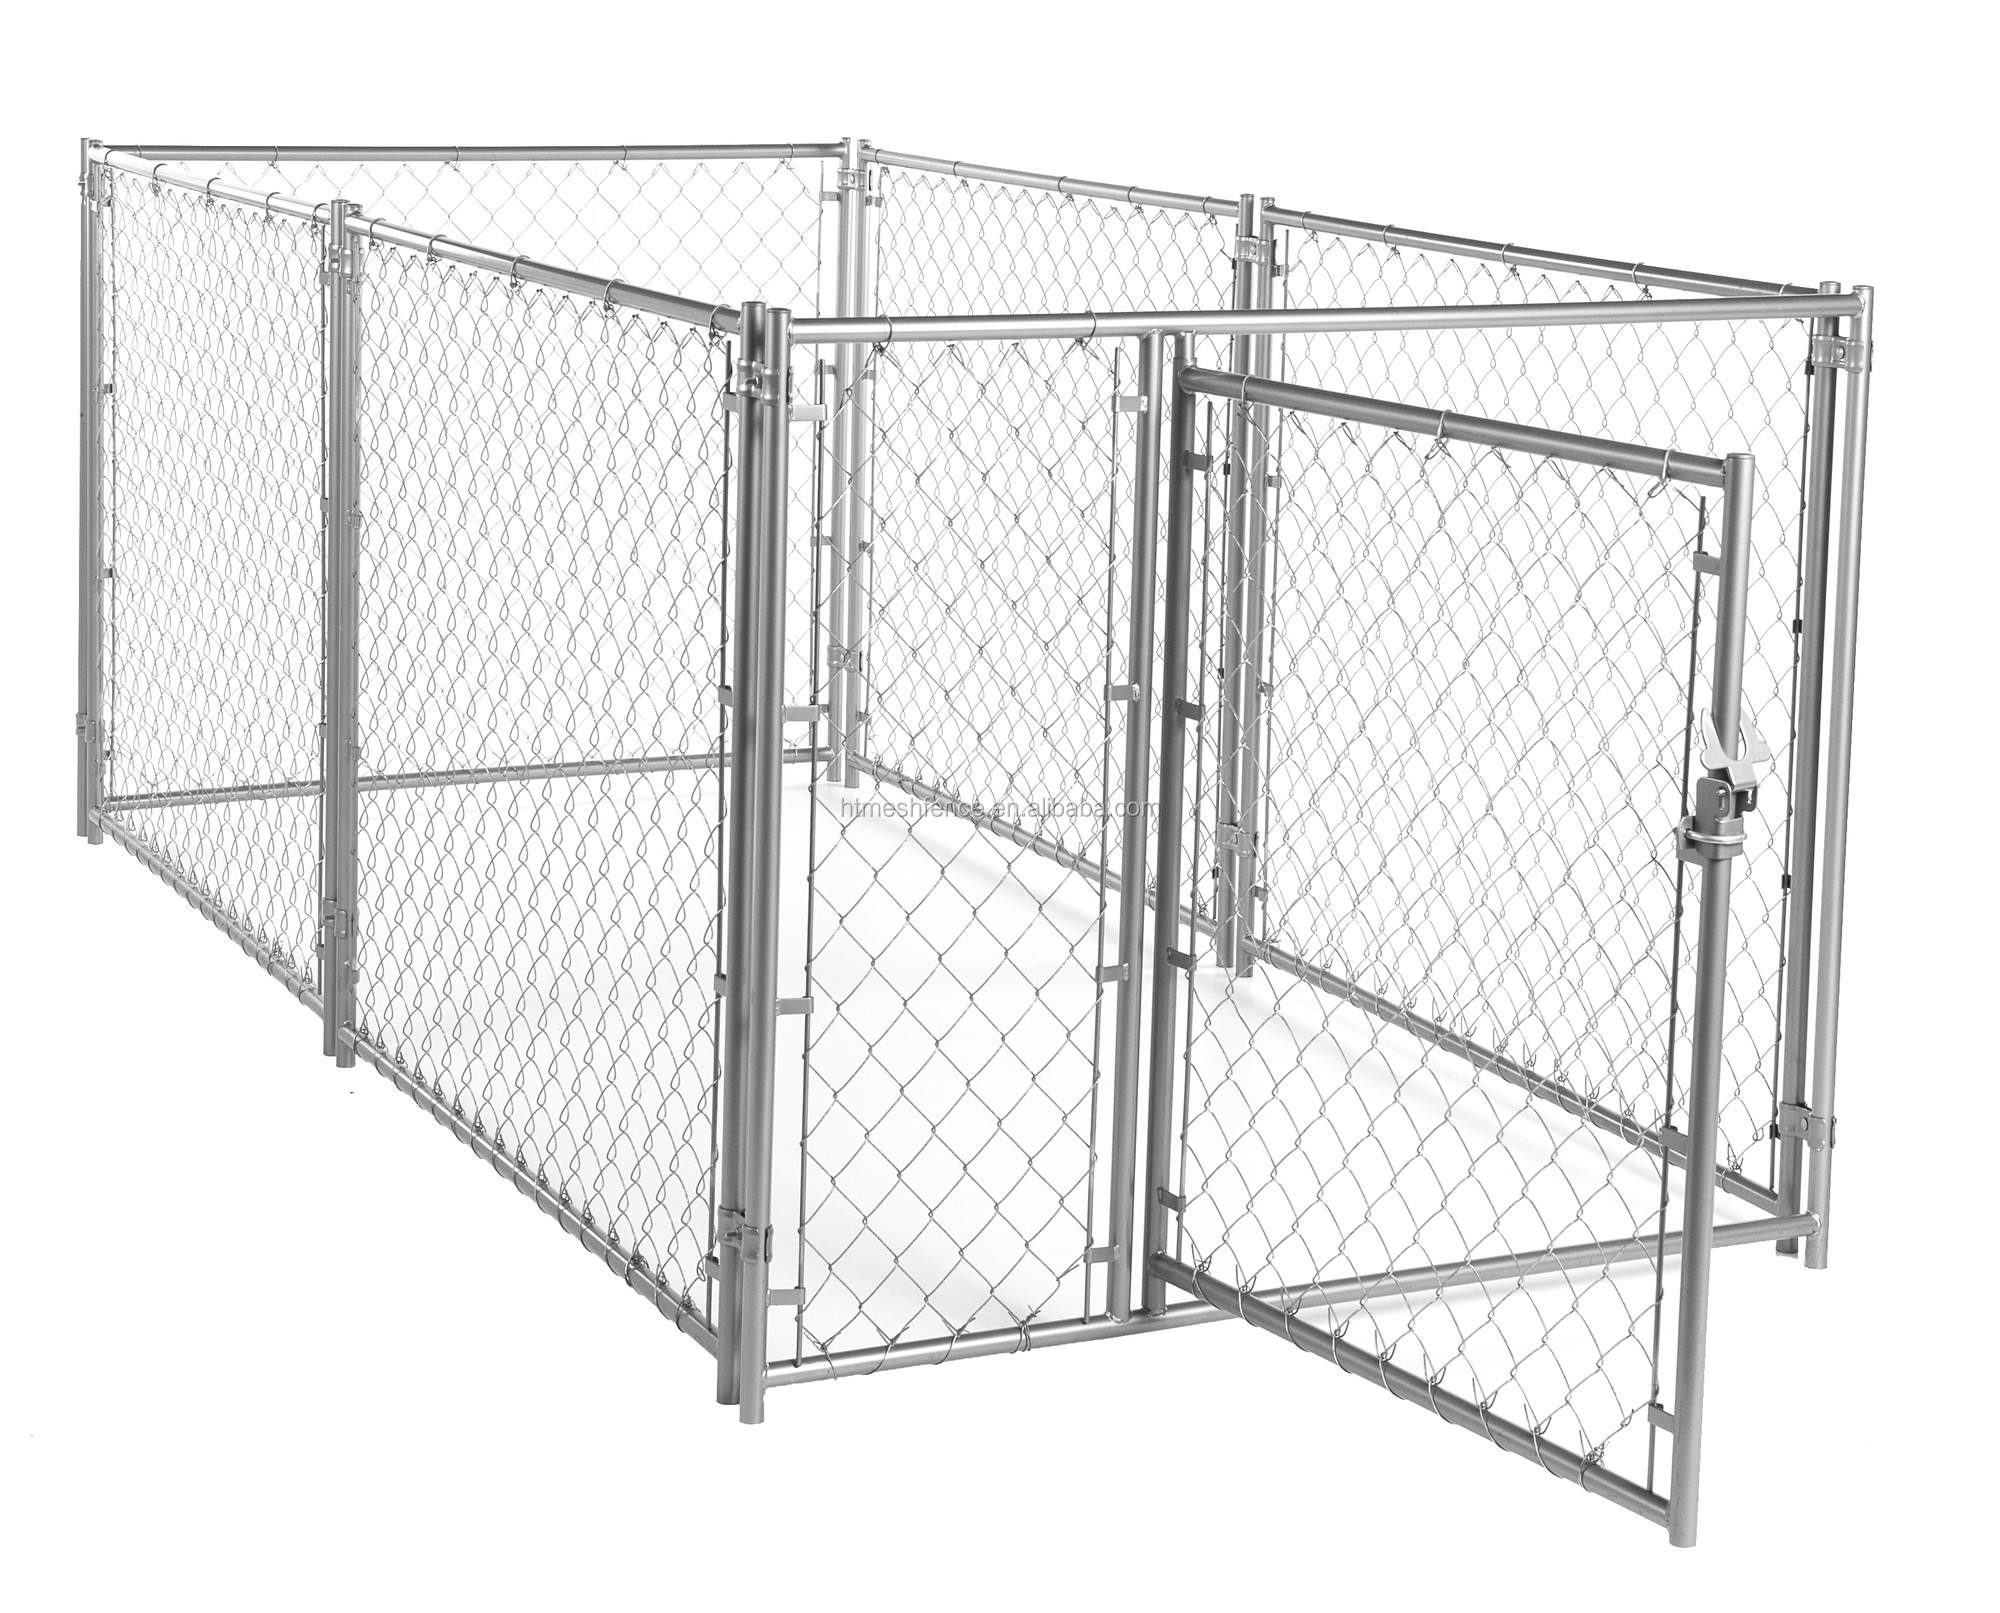 friendly metal large dog cage kennels /DOG RUN PEN CAGE/dog kennel cages direct factory